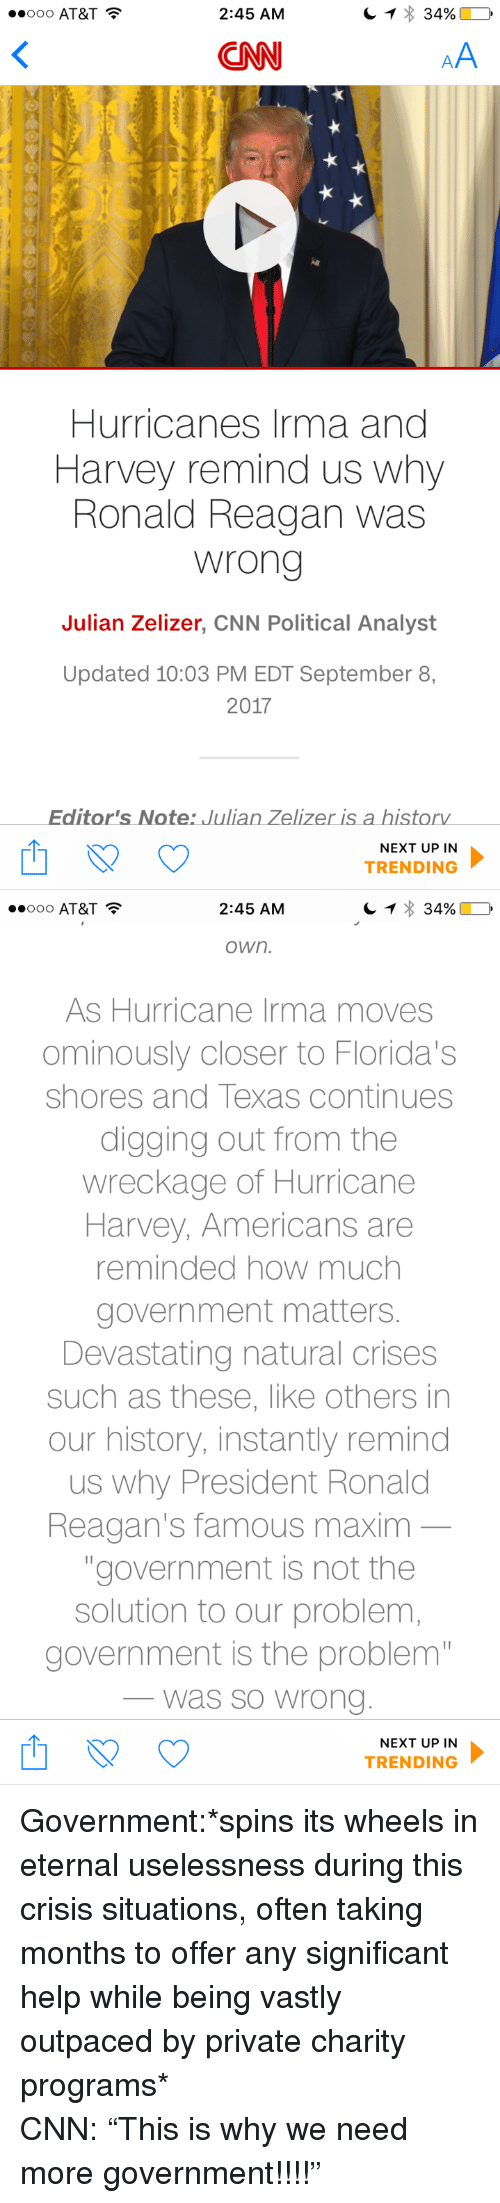 """Hurricane Harvey: OOO AT&T  2:45 AM  CNN  Hurricanes Irma and  Harvey remind us why  Ronald Reagan was  wrong  Julian Zelizer, CNN Political Analyst  Updated 10:03 PM EDT September 8,  2017  Editor's Note: Julian Zelizer is a historv  NEXT UP IN  TRENDING   2:45 AM  own.  As Hurricane Irma moves  ominously closer to Florida's  shores and Texas continues  digging out from the  wreckage of Hurricane  Harvey, Americans are  reminded how much  government matters  Devastating natural crises  such as these, like others in  our history, instantly remind  us why President Ronald  Reagan's famous maxim  """"government is not the  solution to our problem  government is the problem  was so Wrono  NEXT UP IN  TRENDING <p>Government:*spins its wheels in eternal uselessness during this crisis situations, often taking months to offer any significant help while being vastly outpaced by private charity programs*<br/> CNN: &ldquo;This is why we need more government!!!!&rdquo;</p>"""